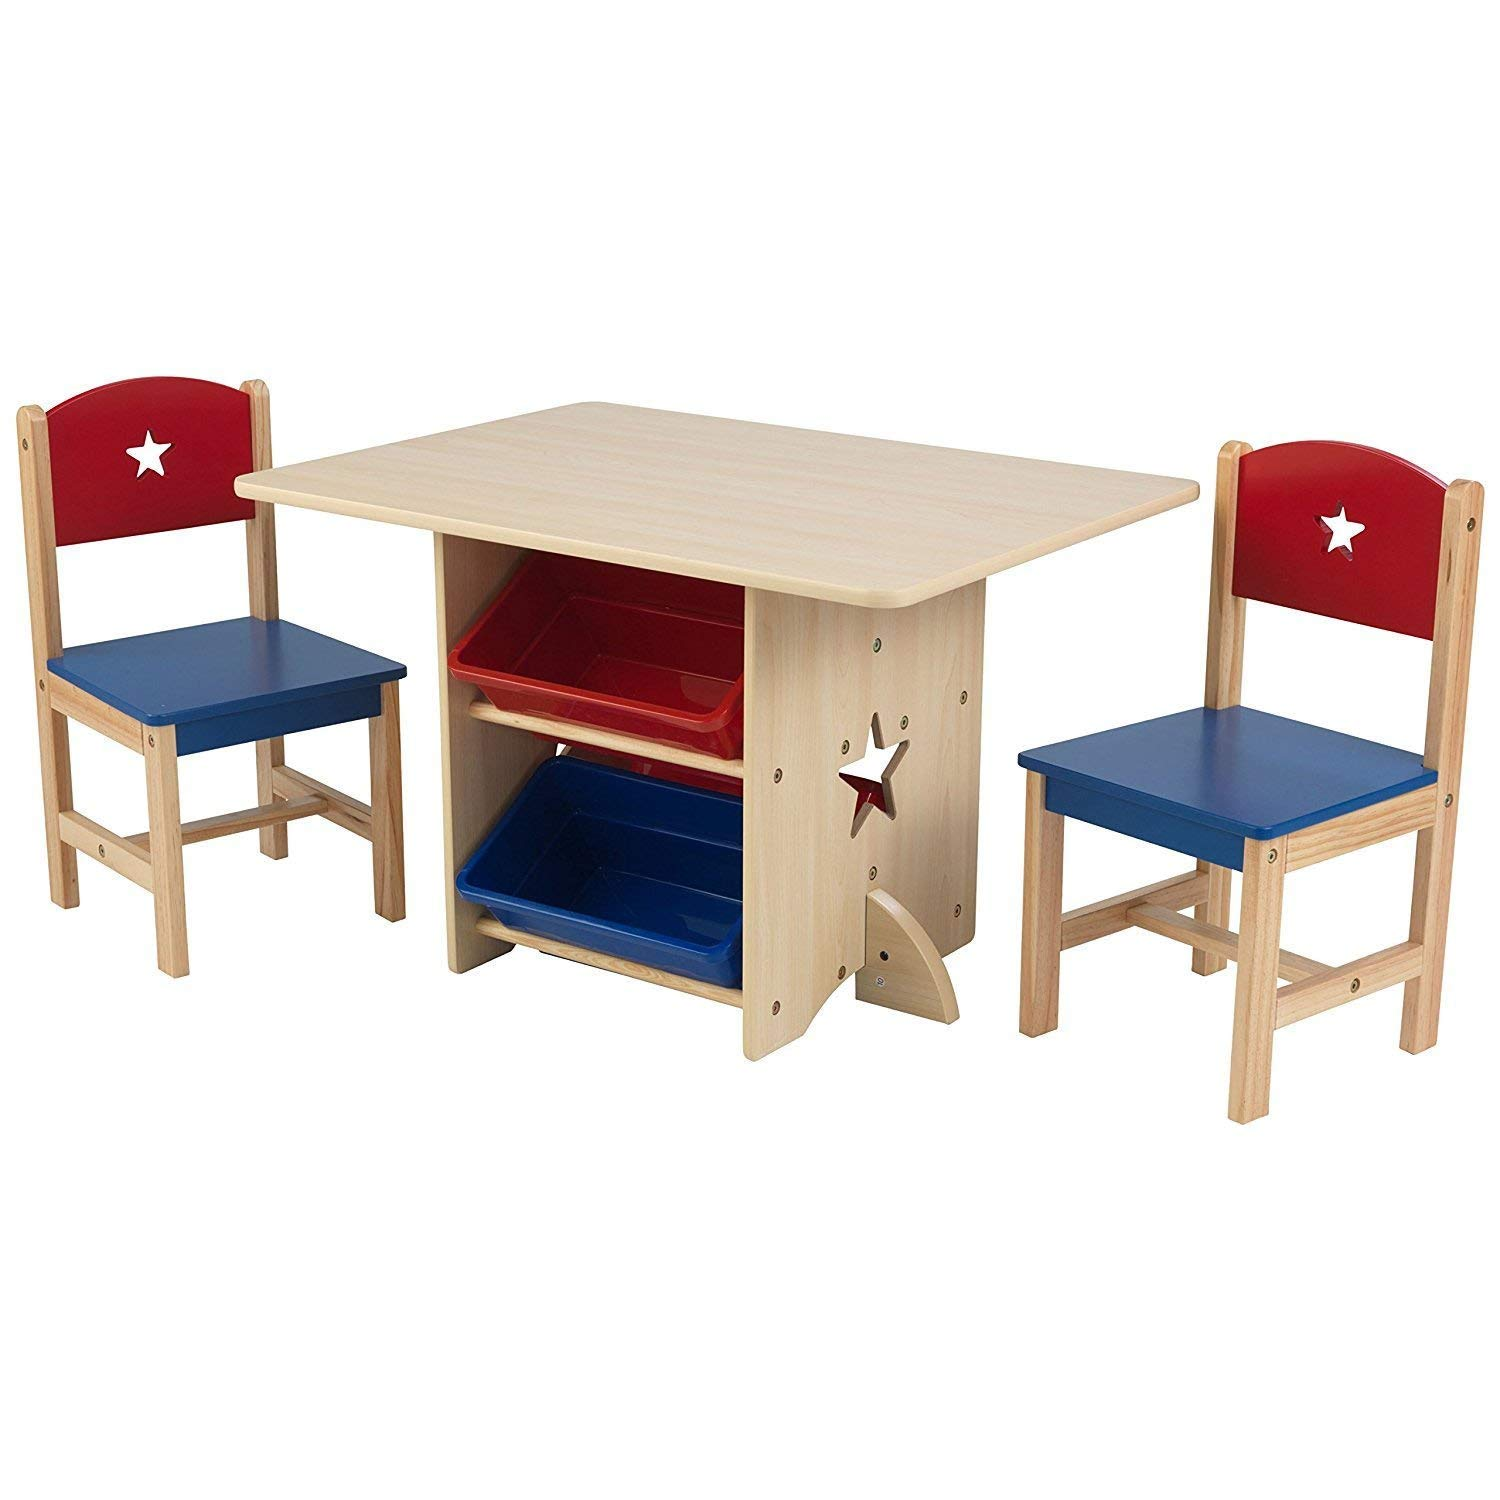 Children's Wooden Star Design Nursery Play Table and Chair Set Table and 2 Chair Set with 4 Storage Boxes … SmashingDealsDirect